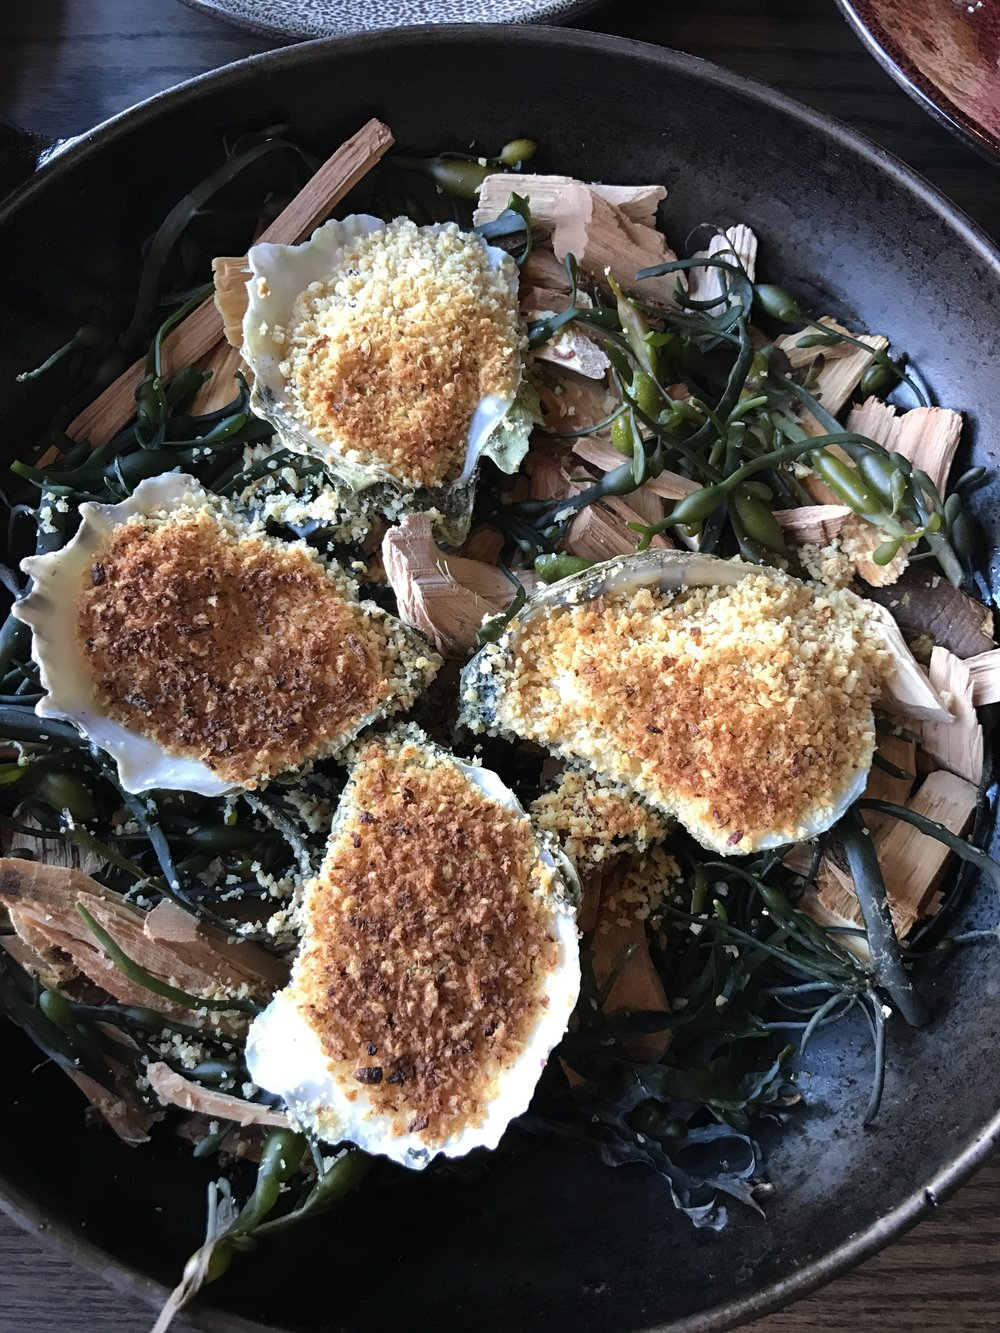 Smoked oysters with garlic butter and breadcrumbs.